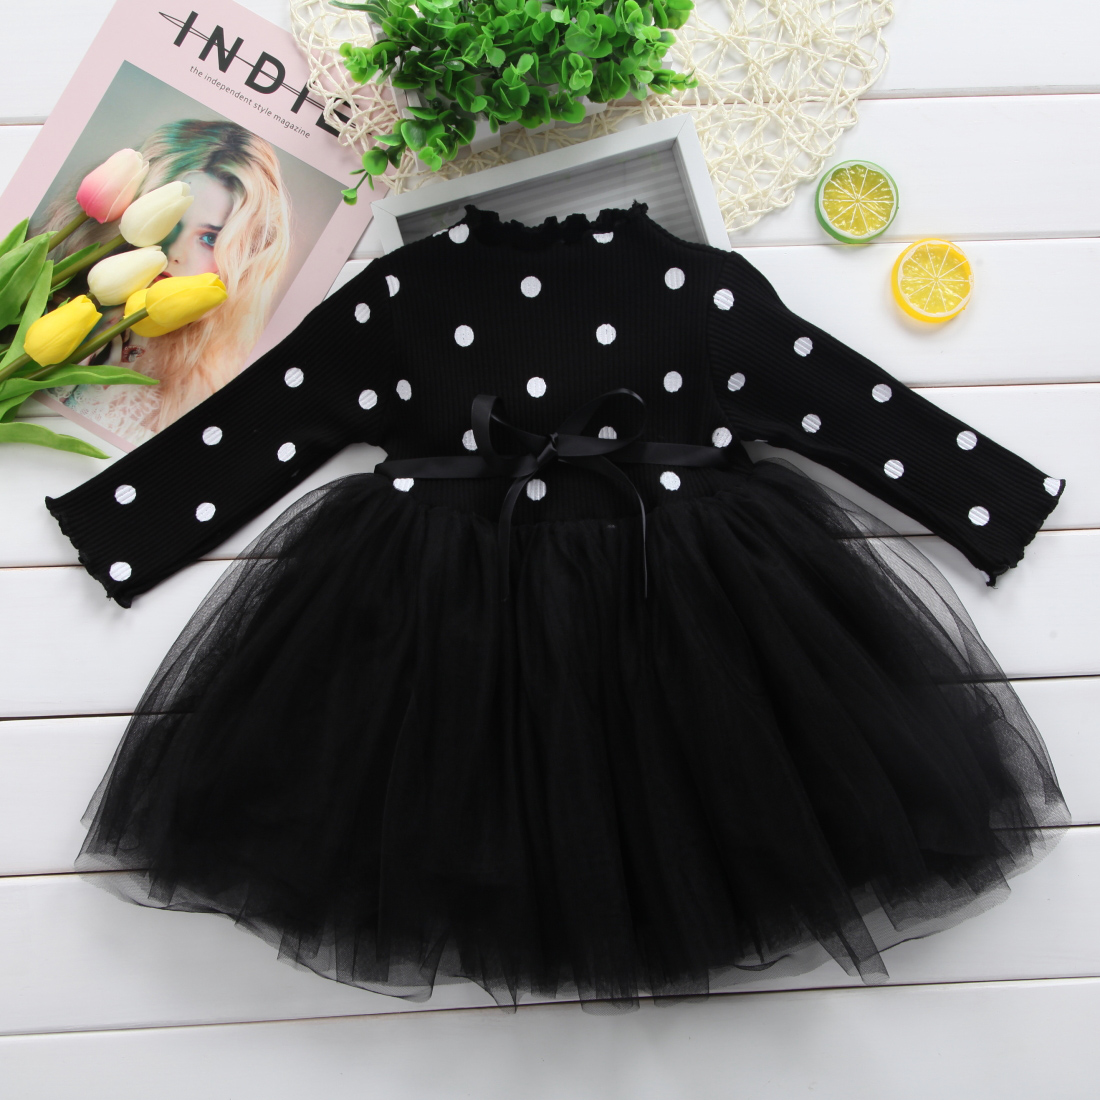 887f19203 Best buy 0 3T Kid Girls Princess Baby Dress Newborn Infant Baby Girl Clothes  Bow Dot Ball Gown Party Dresses Baby Kid Girl Clothes Hsp116 online cheap